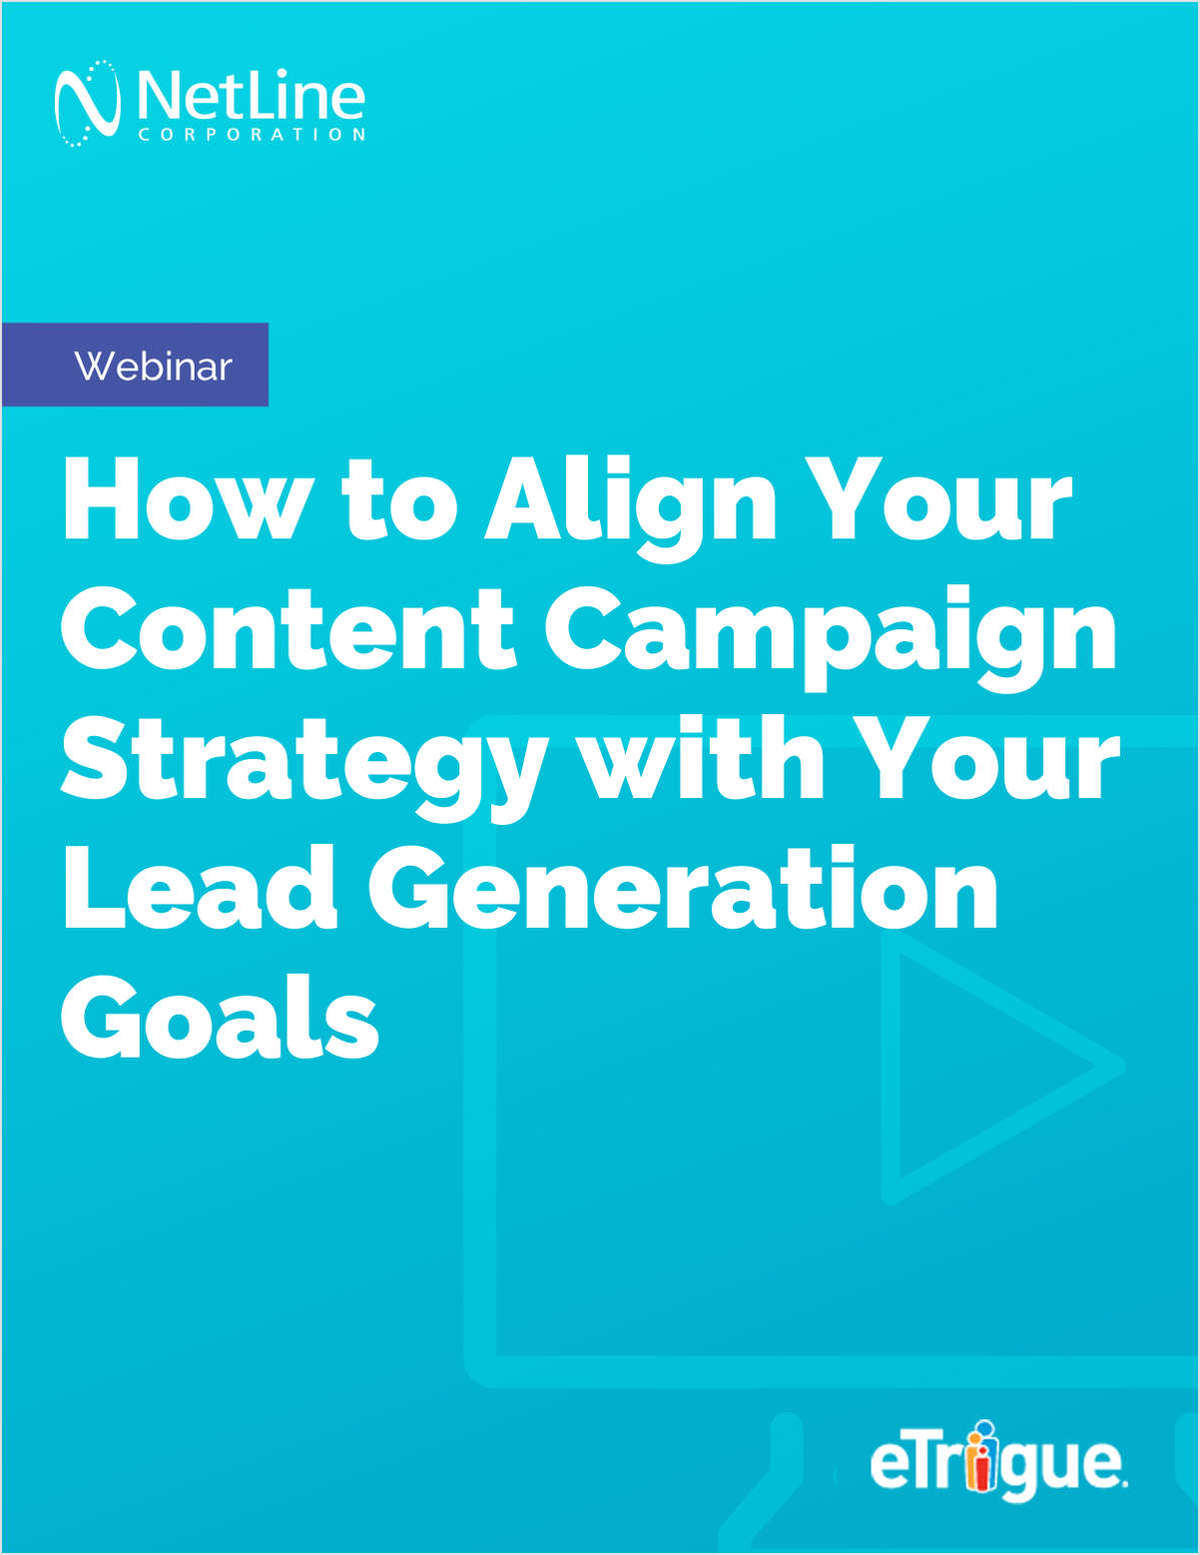 How to Align Your Content Campaign Strategy with Your Lead Generation Goals